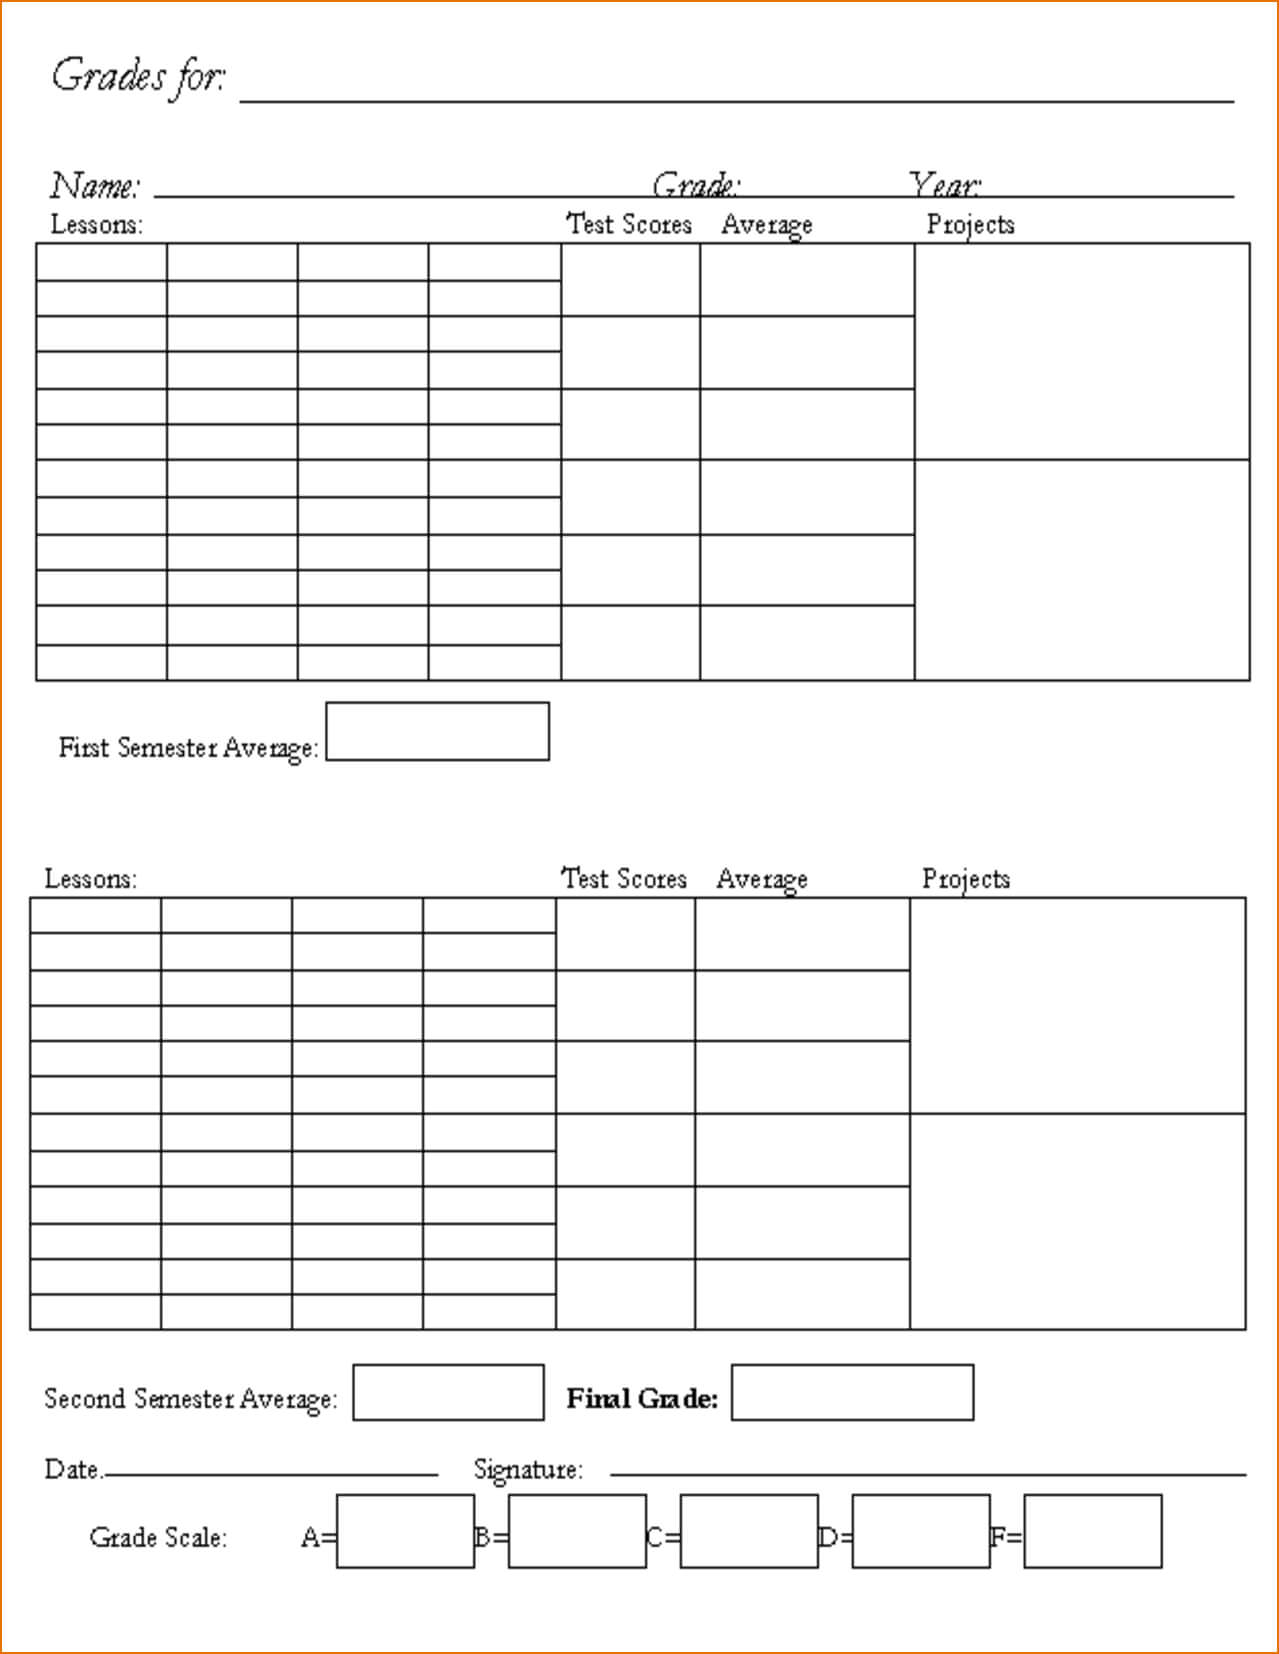 Name Card Template For Kindergarten Throughout Boyfriend Throughout Boyfriend Report Card Template